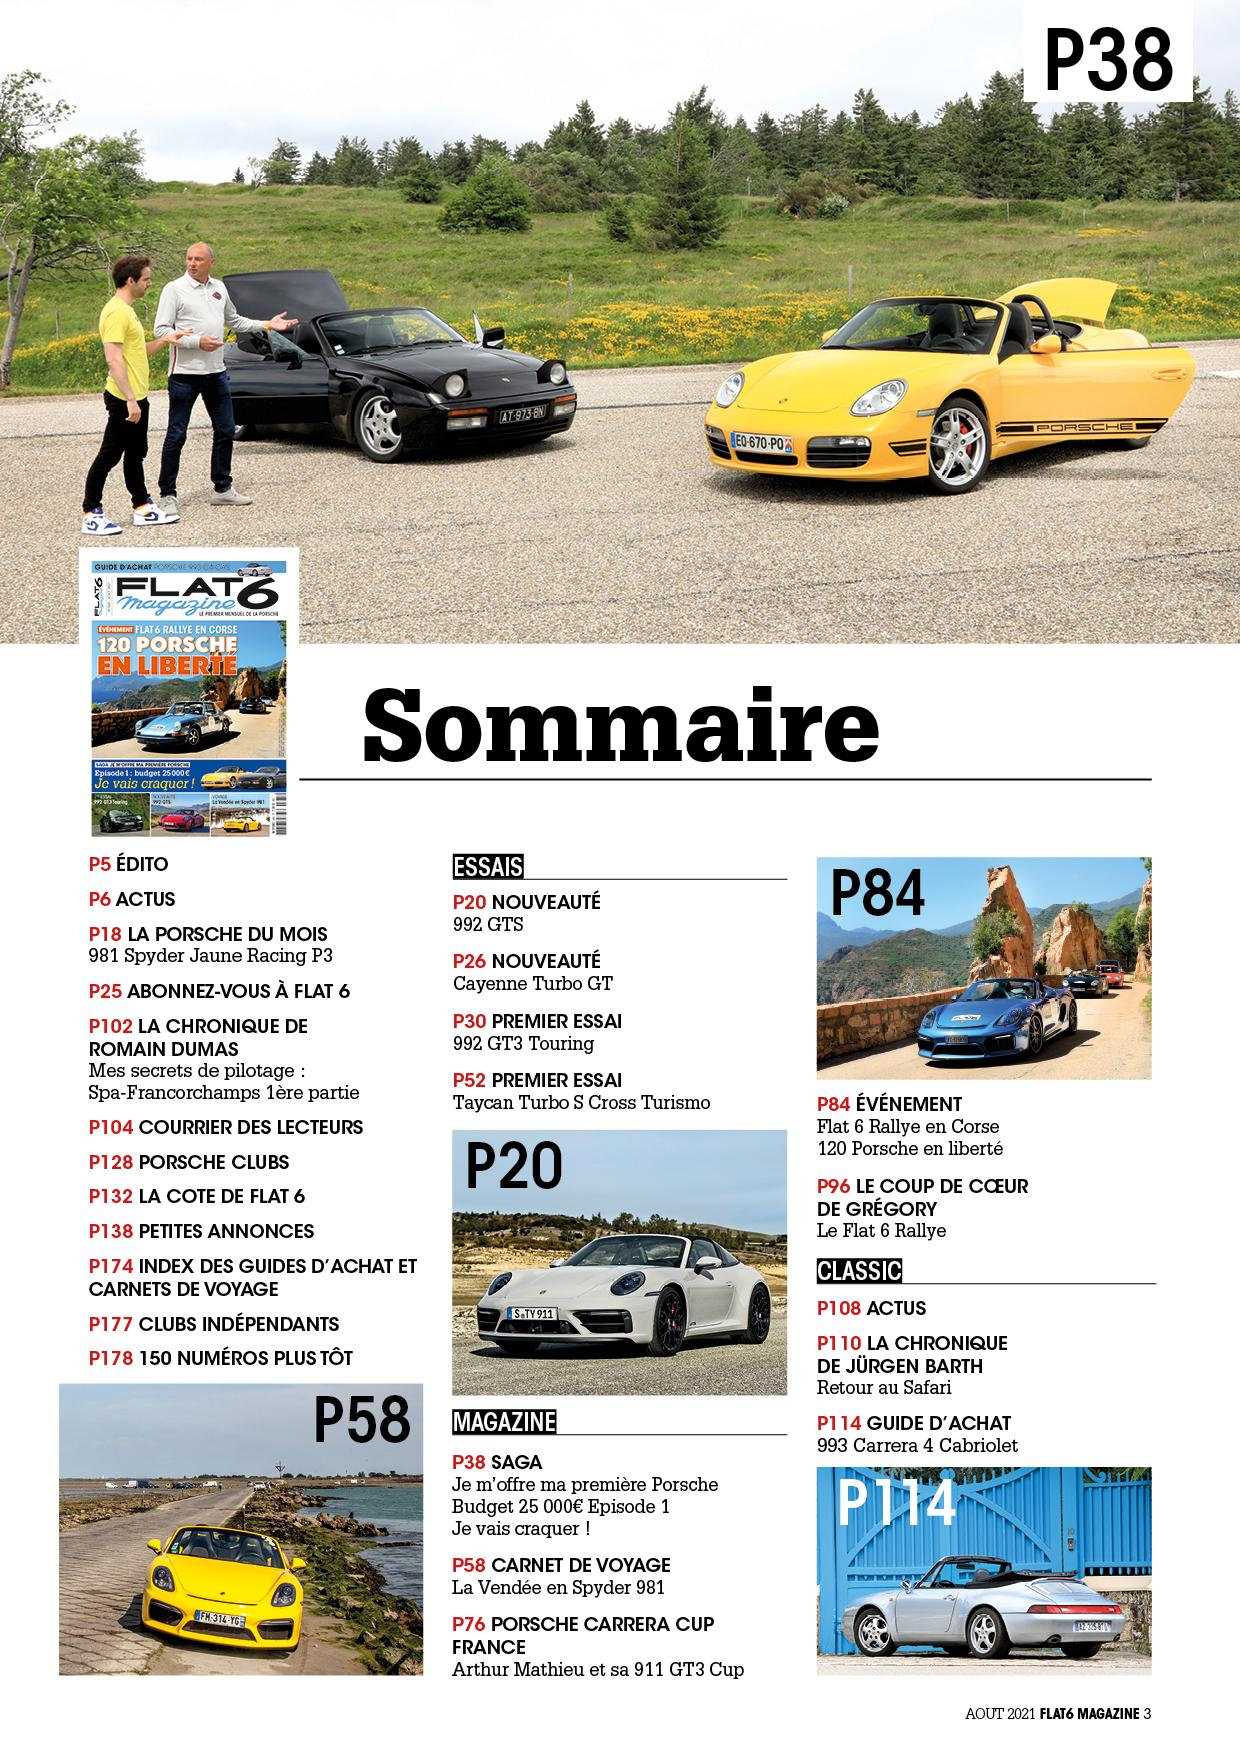 Sommaire365